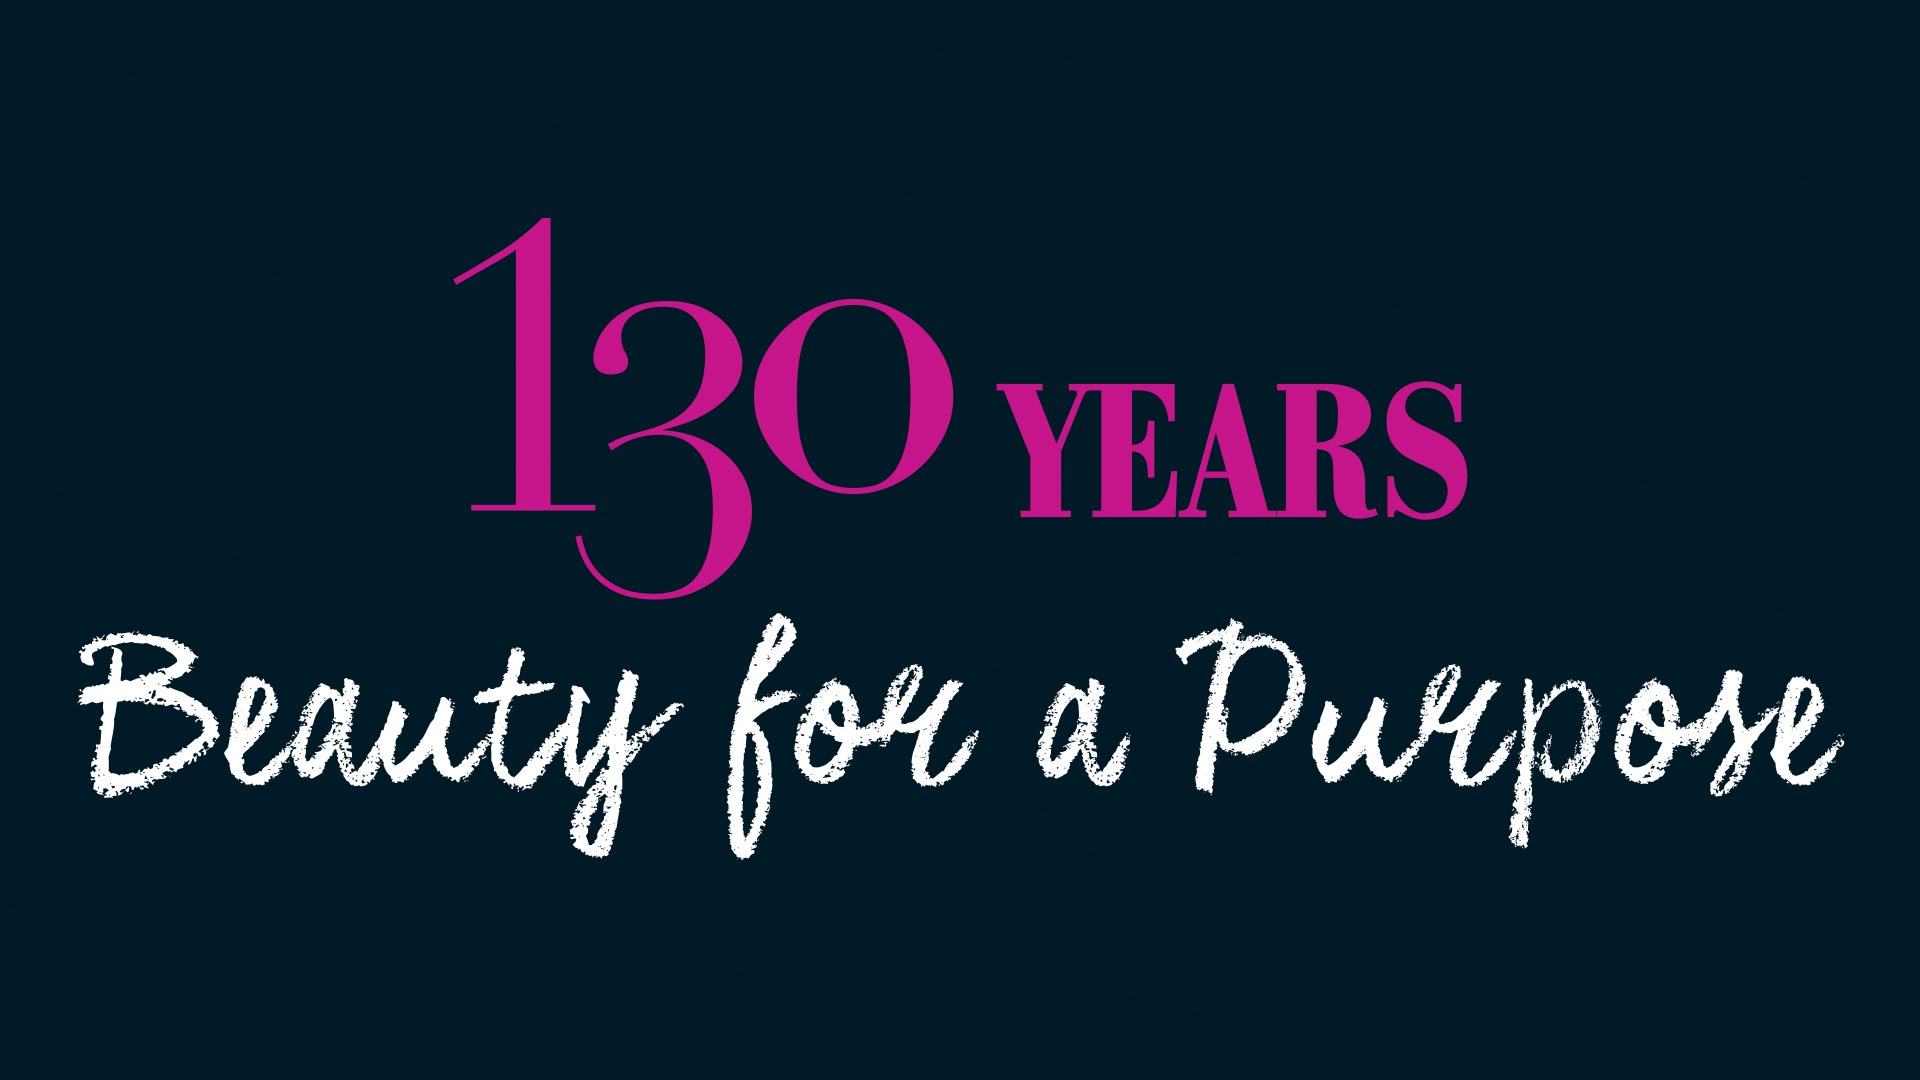 Are Avon Products Made In China - 130 Years